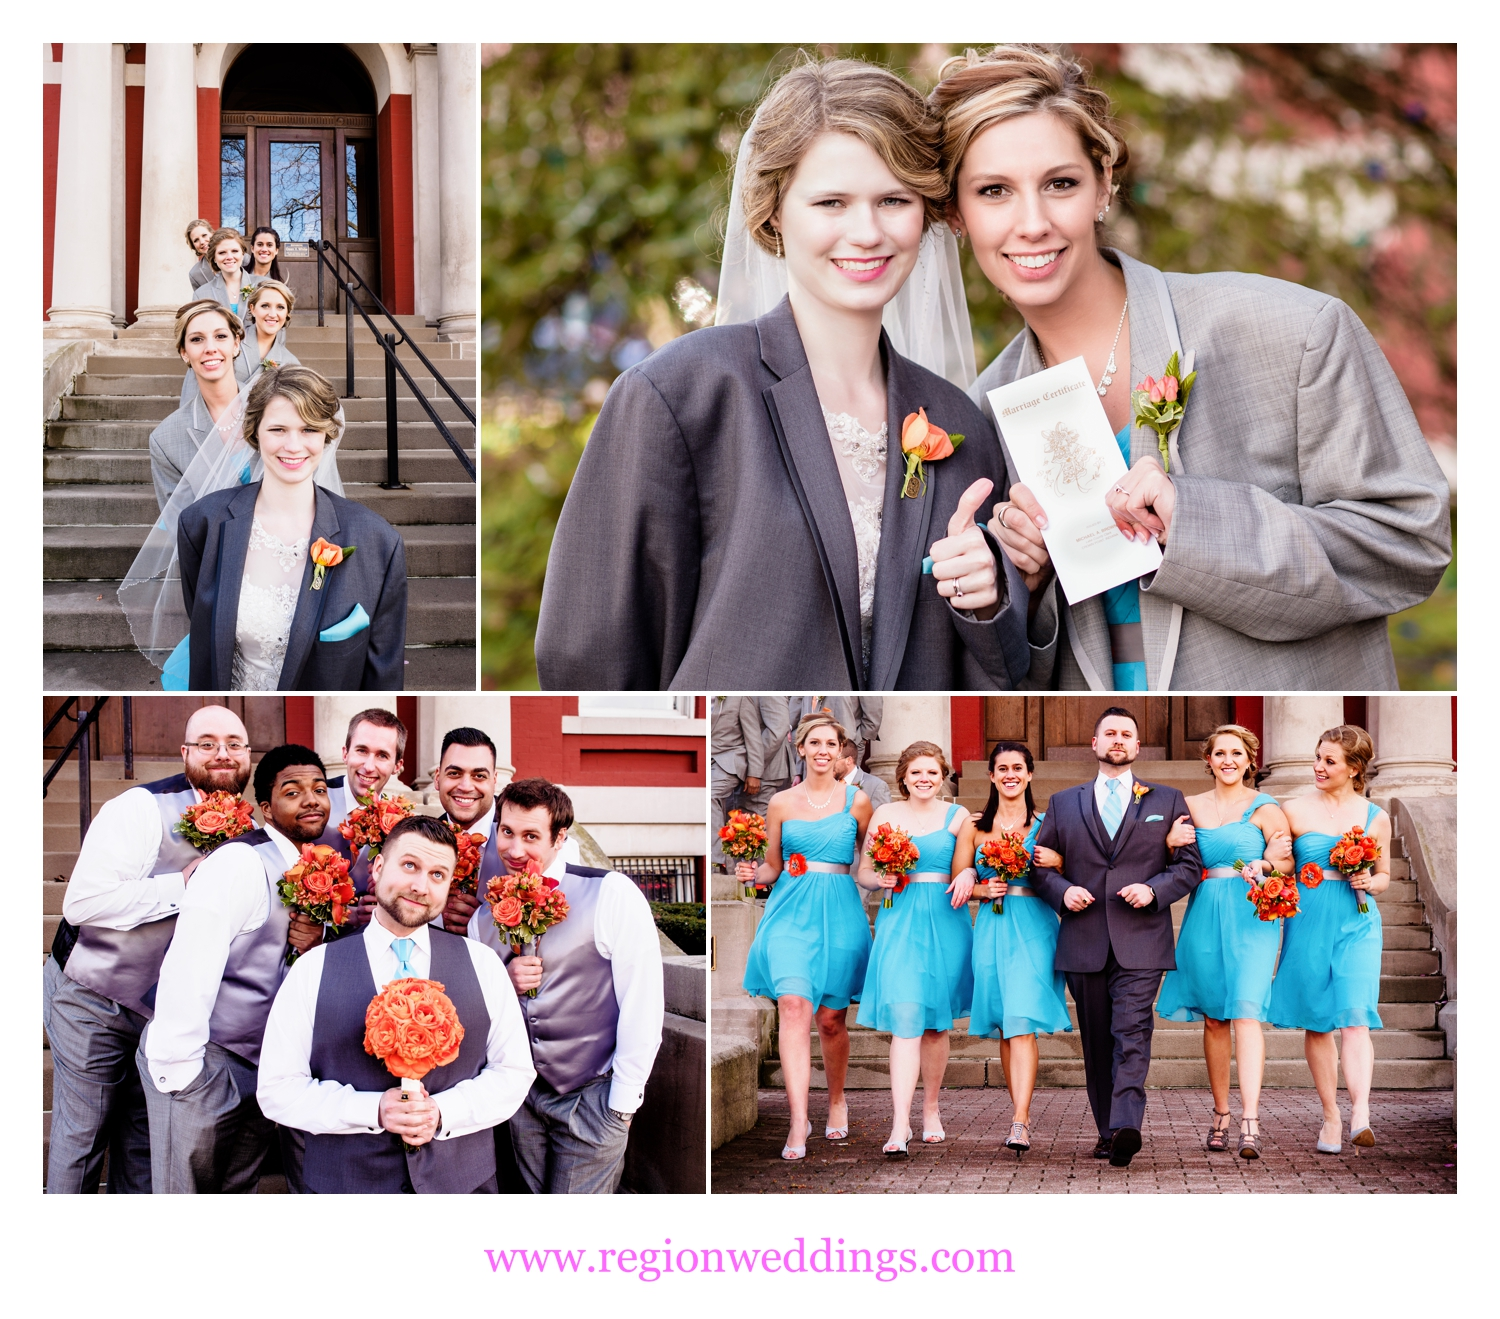 Fun wedding photos at the downtown Crown Point Square.